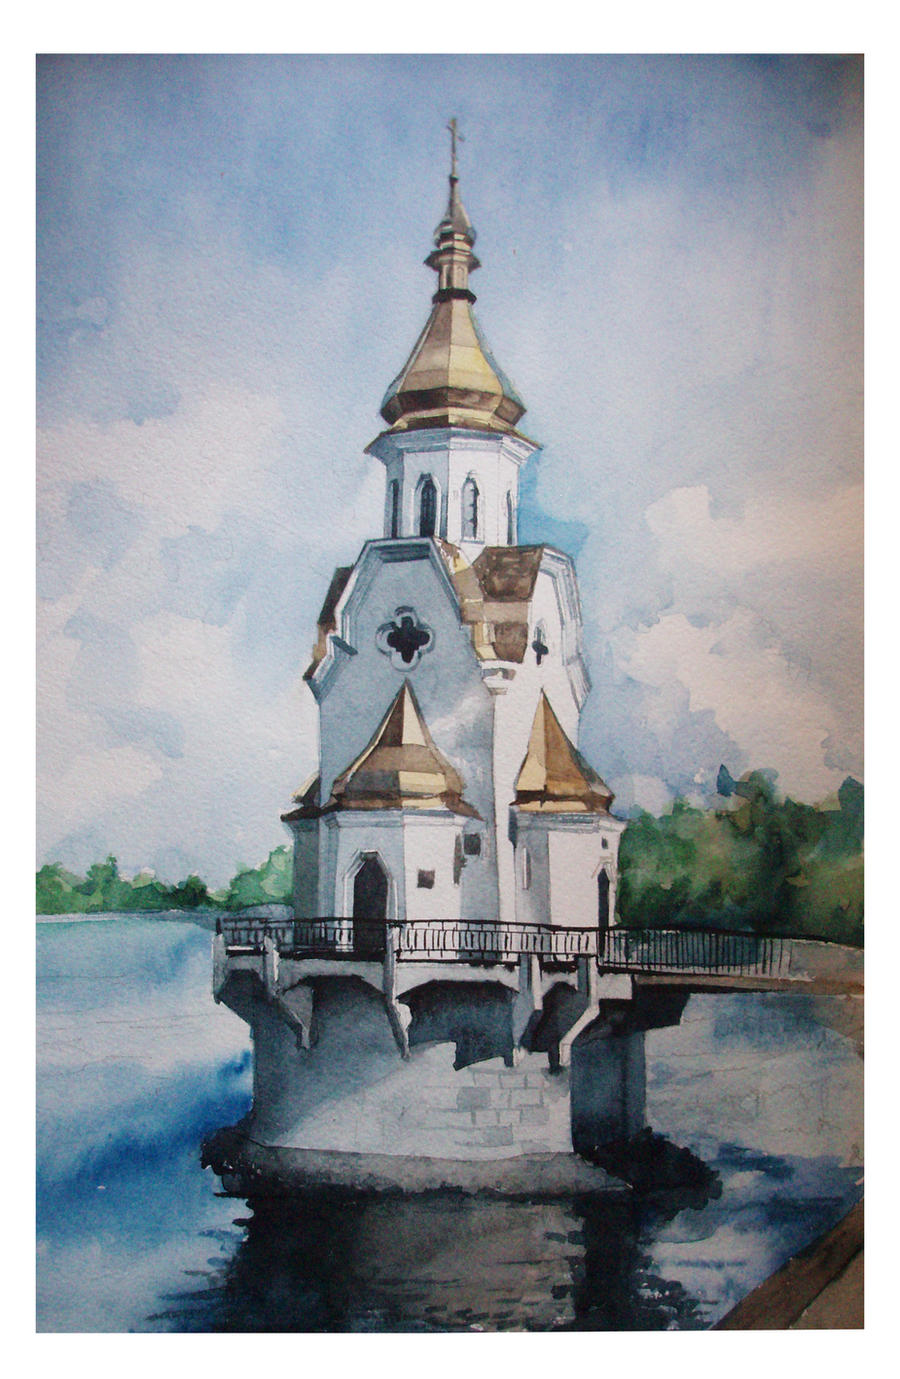 Church of St. Nicholas in the by PartySonya on DeviantArt